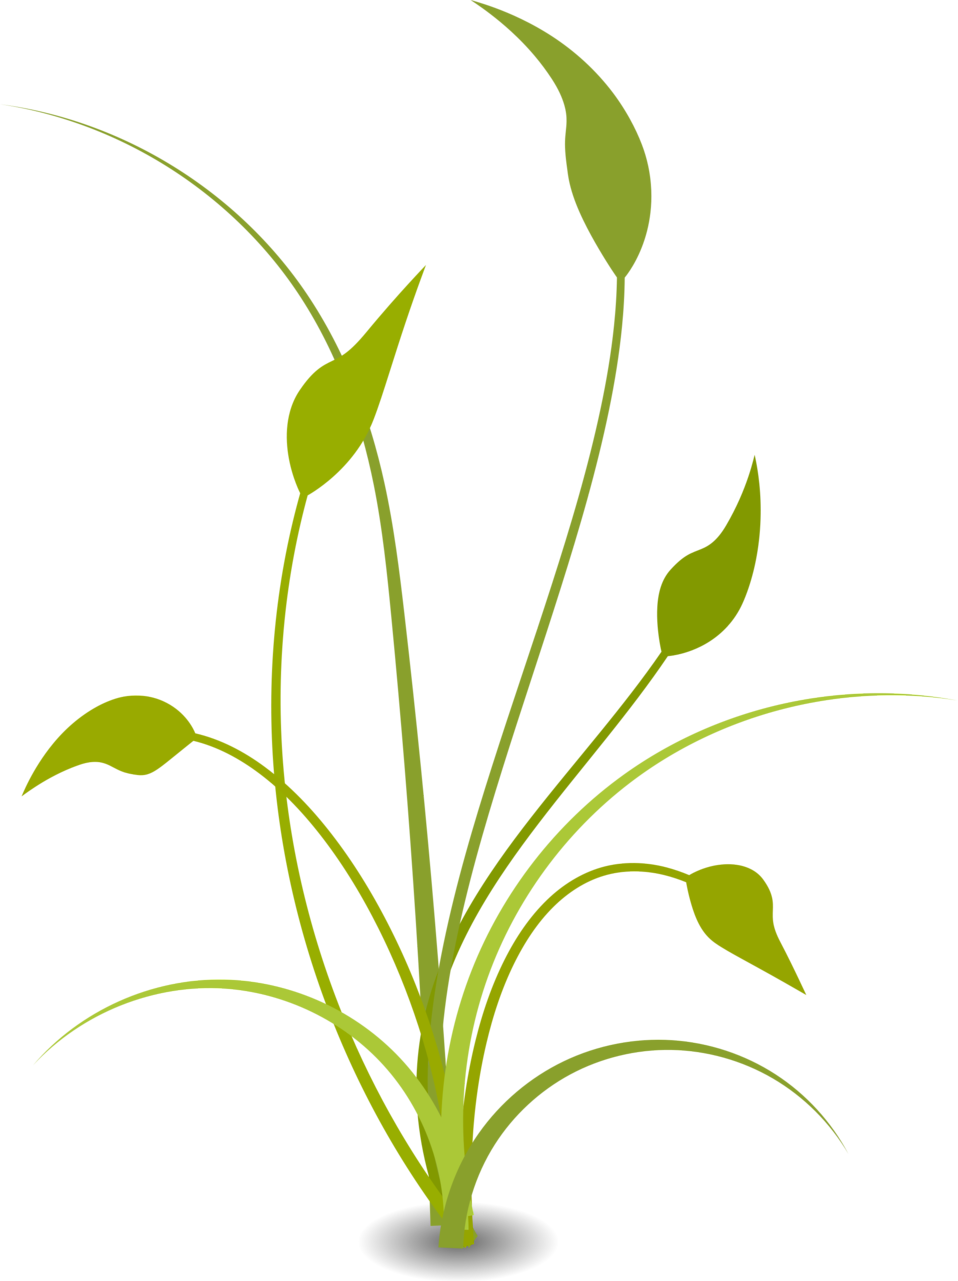 Greenery vector plant. Illustration of a